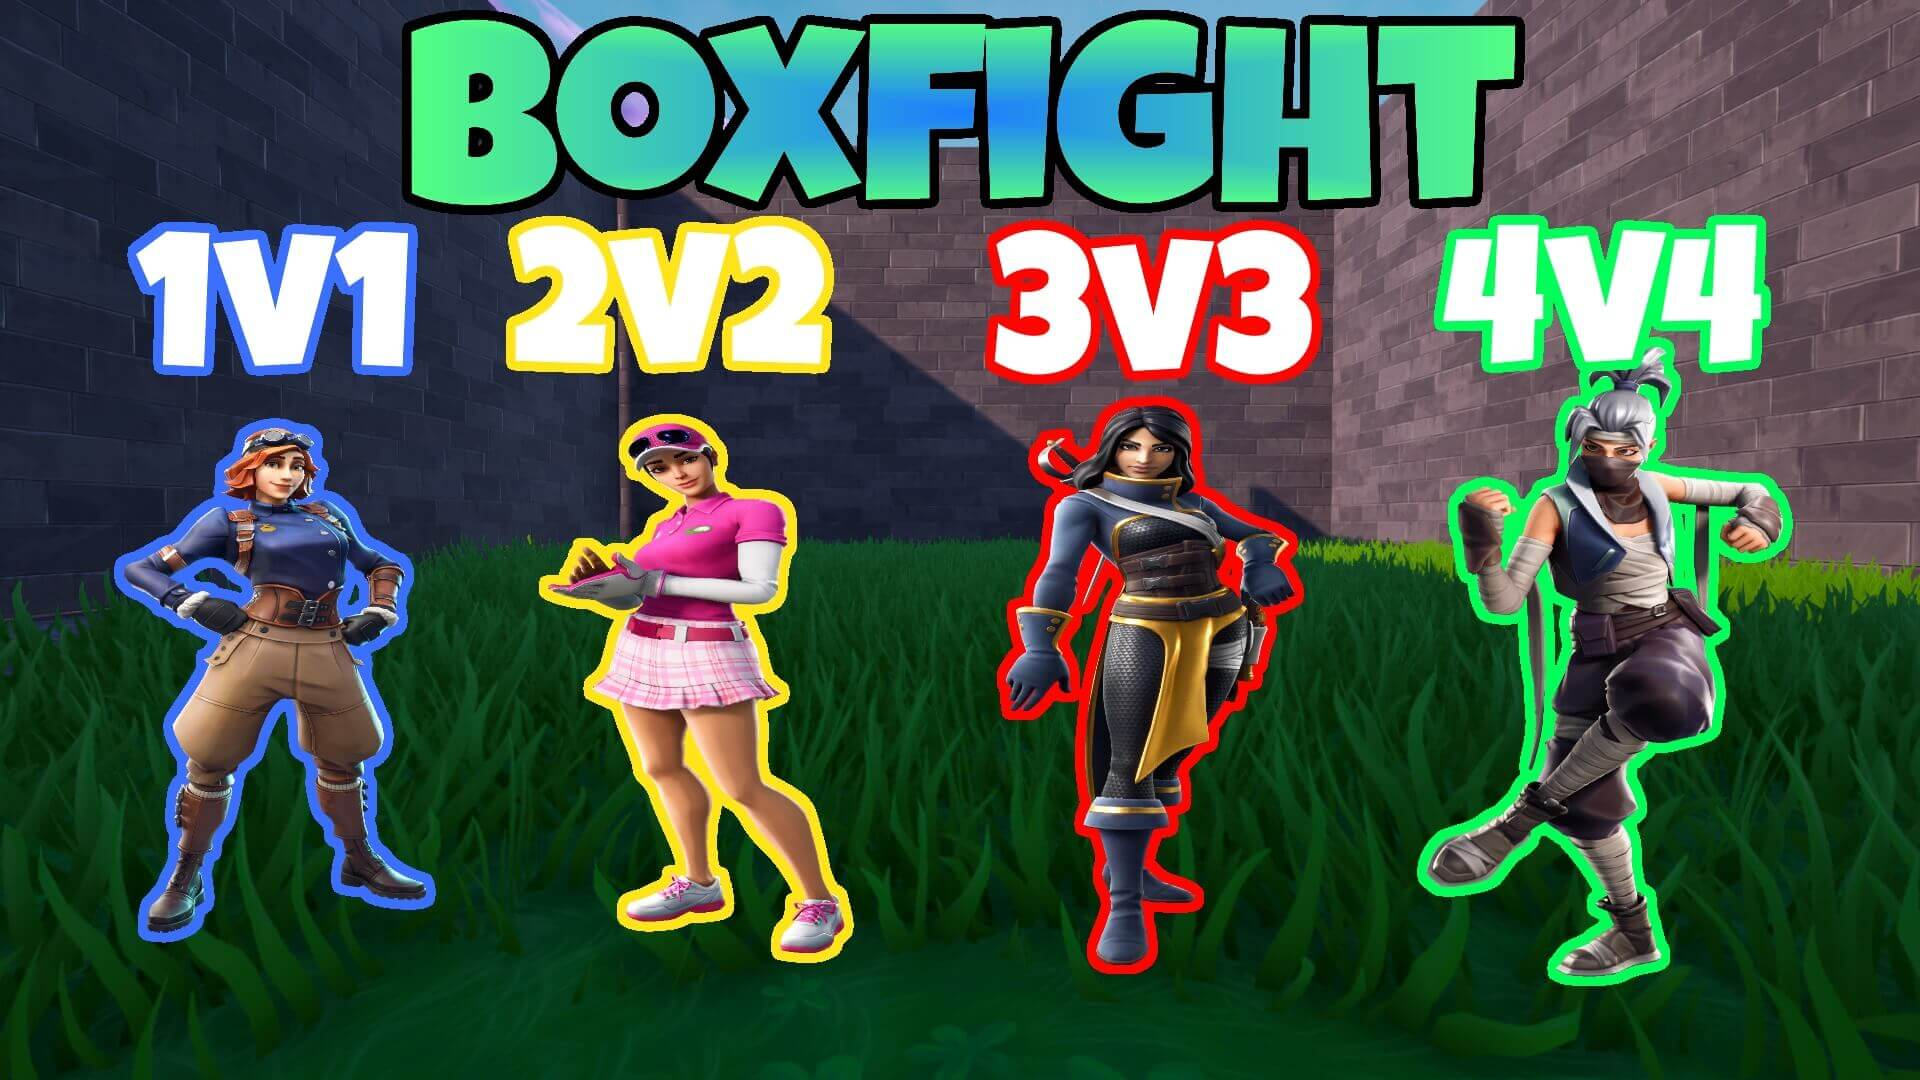 BOX FIGHT 1V1 2V2 3V3 4V4